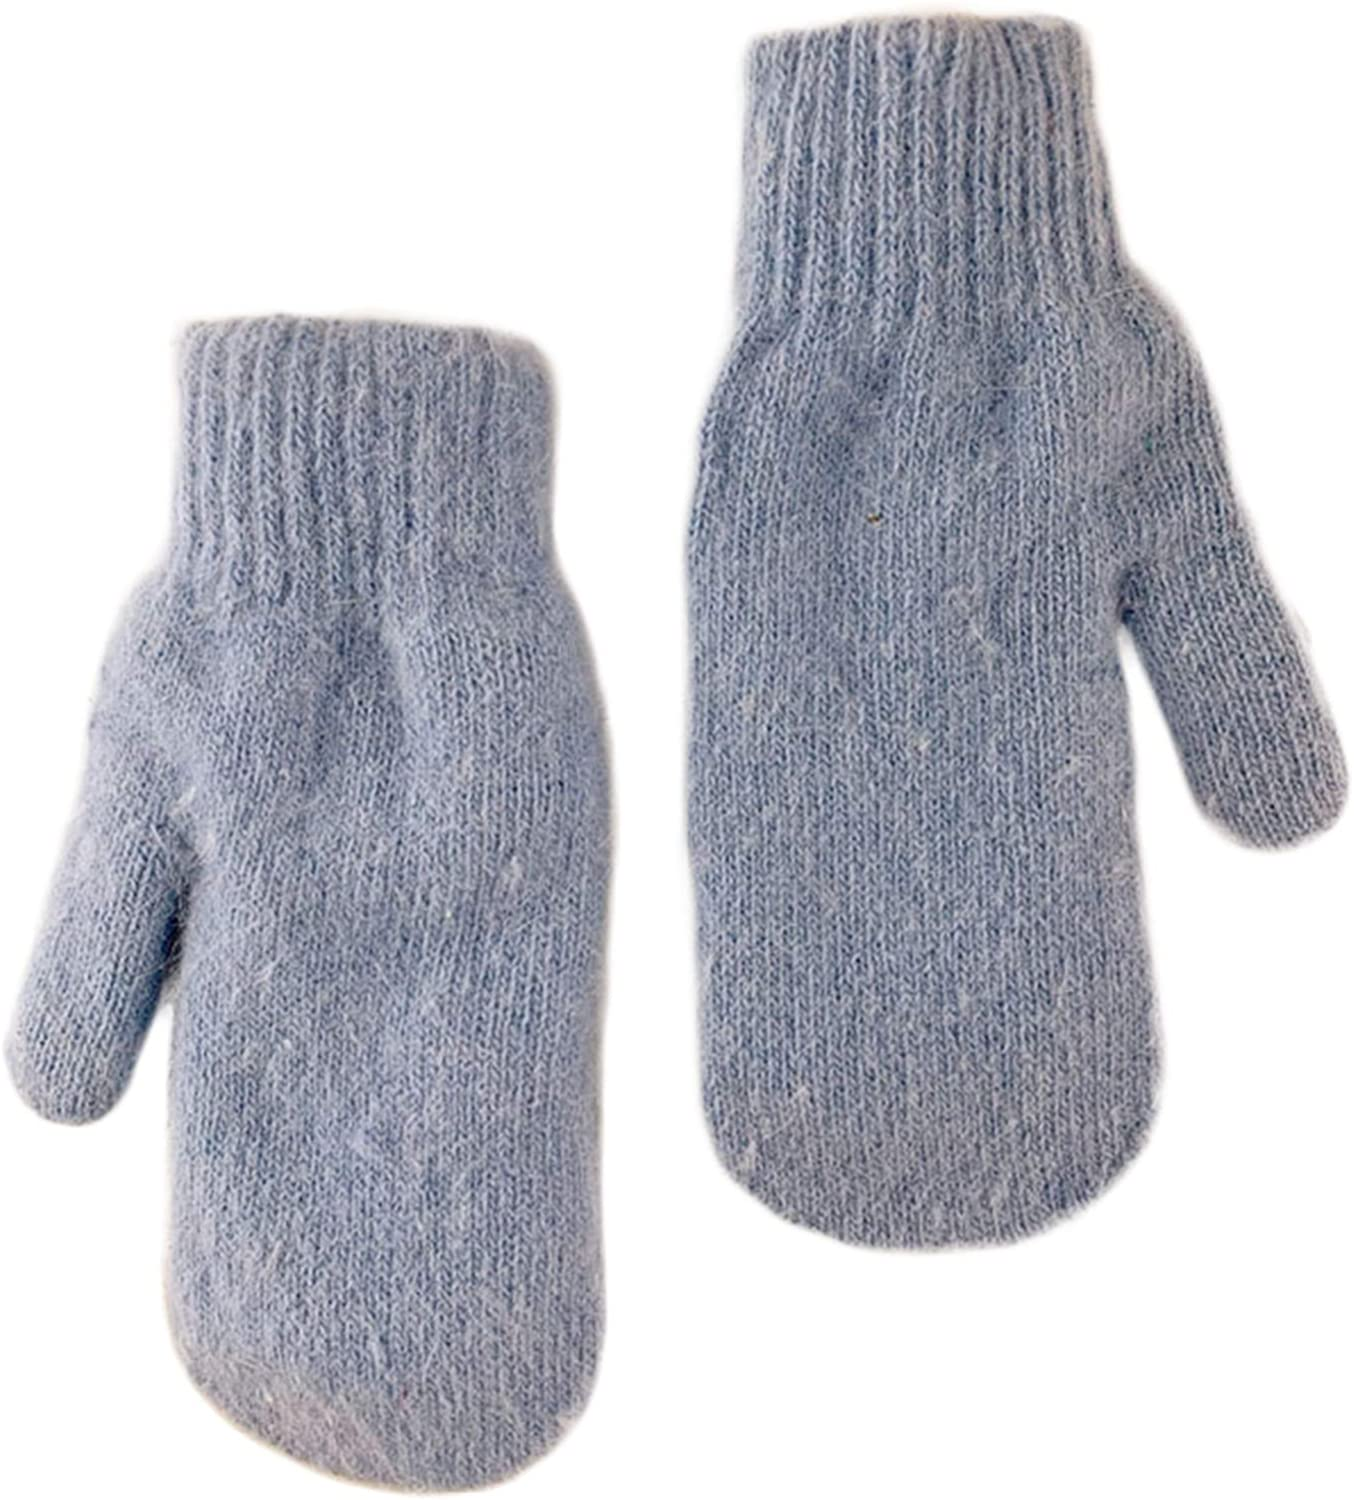 Women Winter Gloves Double Layer Warm Thermal Full Finger Glove Solid Color Stretchy Plush Soft Lining Knit Mitten